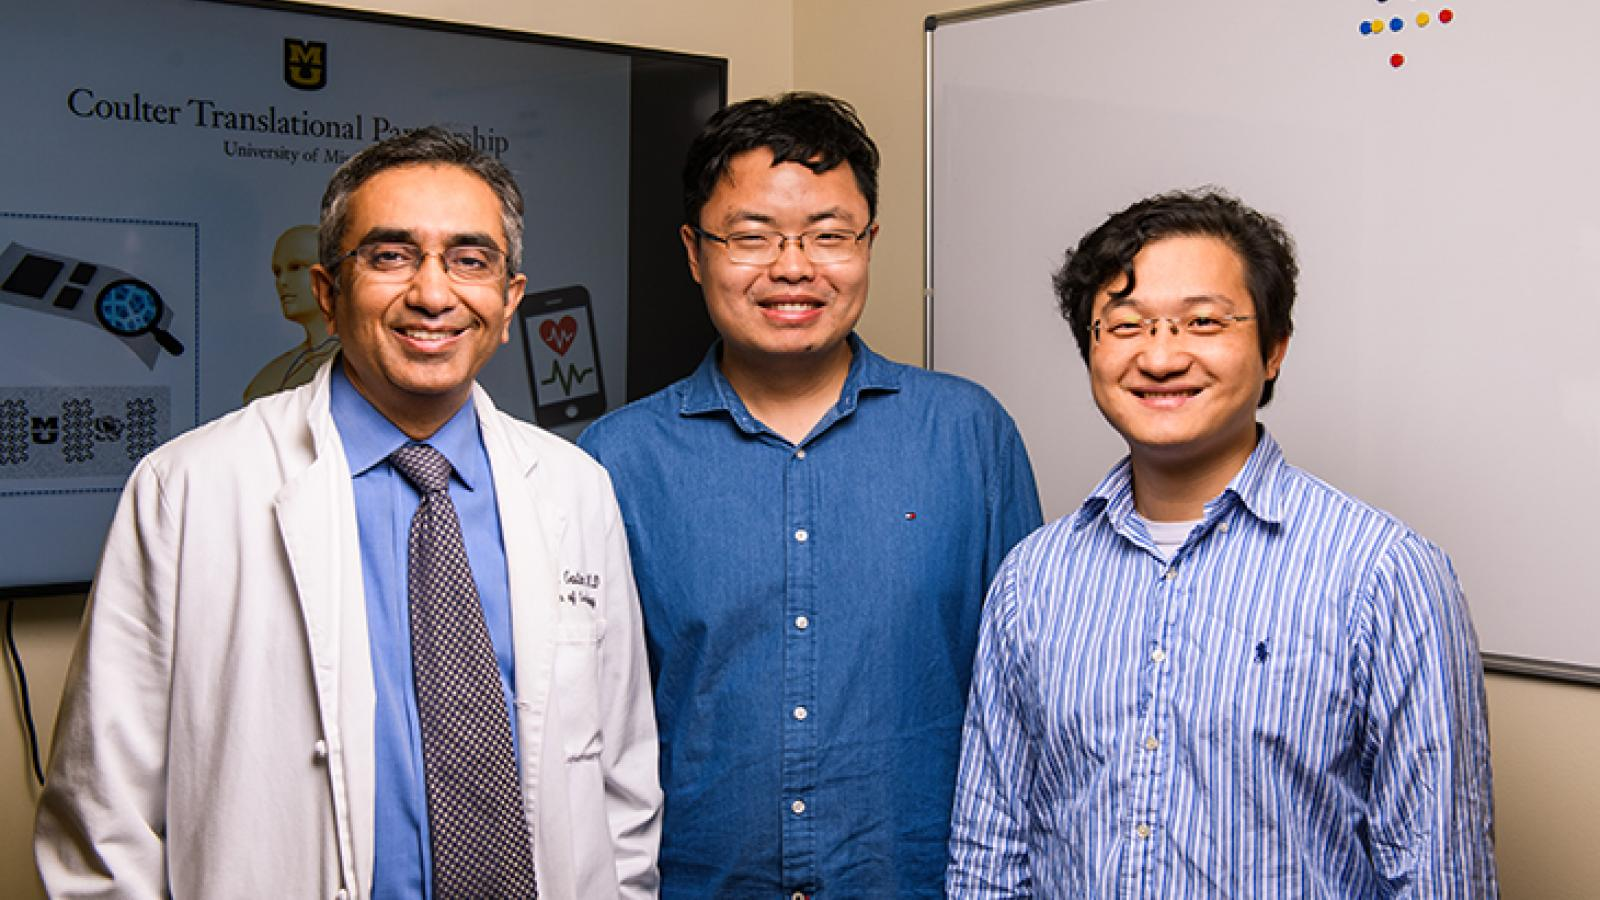 Photo of Dr. Gautam, Dr. Lin and Dr. Yan